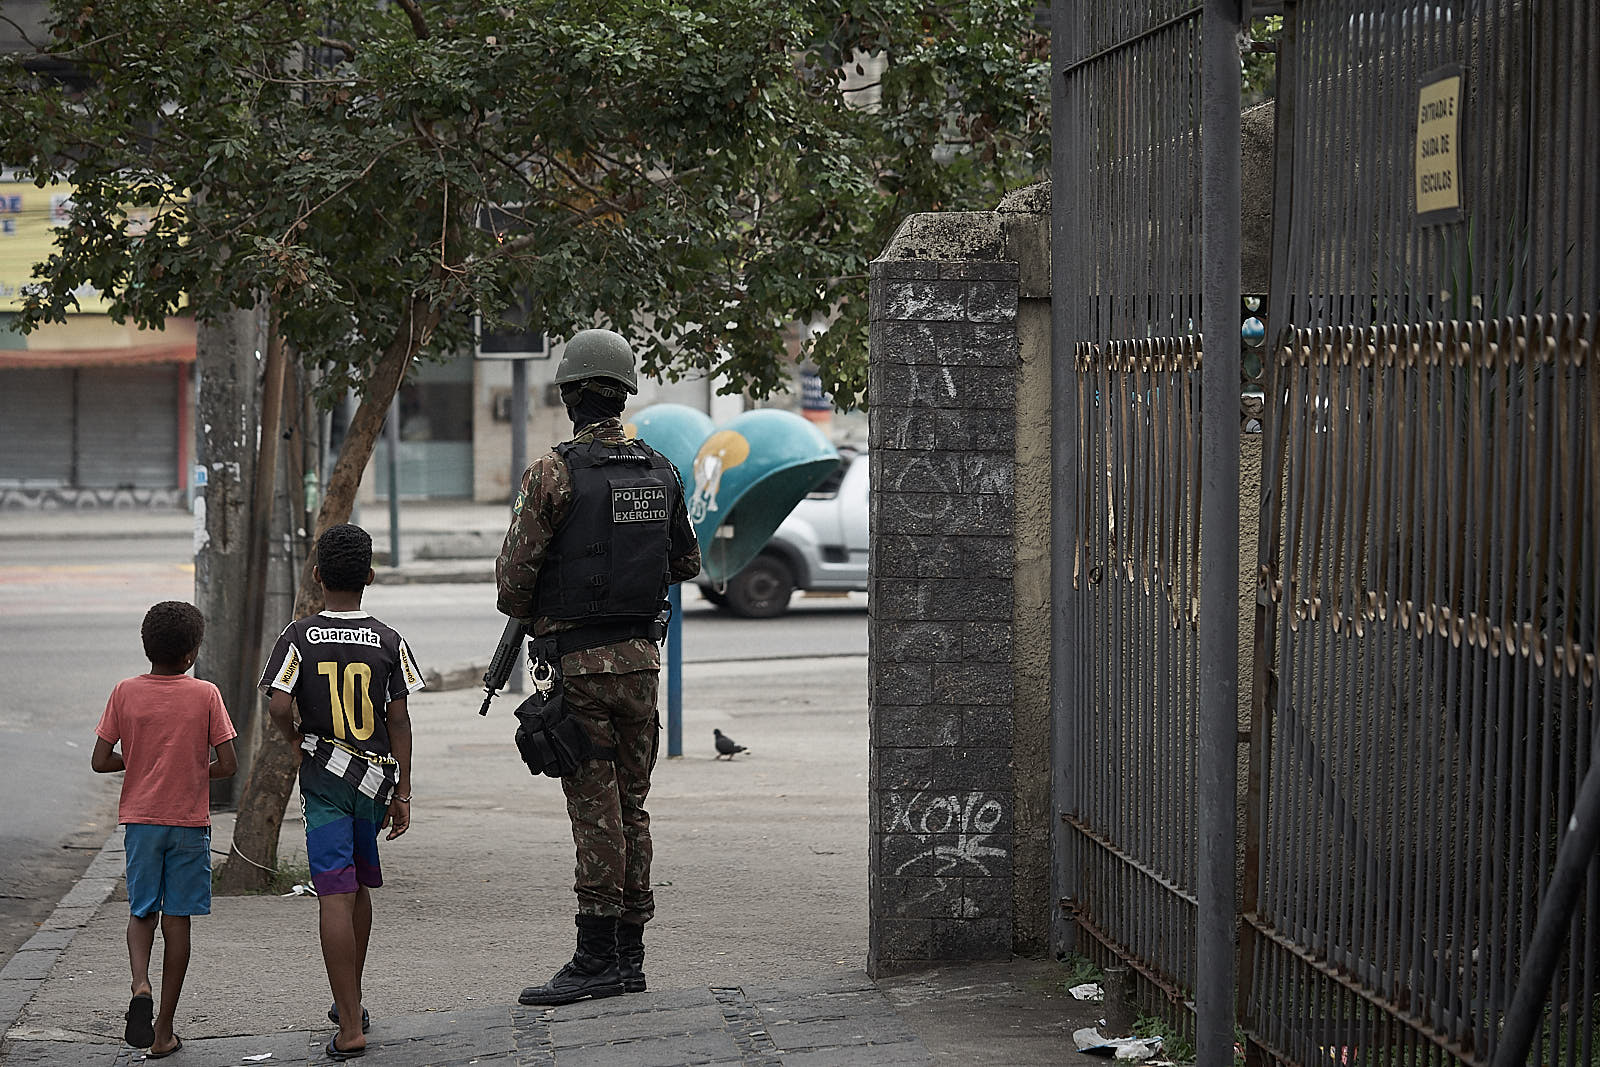 A Brazilian soldier, part of the federal intervention, guards a street during an operation against narcotics factions. The government says that policy decisions like these operations are what has caused a recent drop in crime. (Photo: C.H. Gardiner)